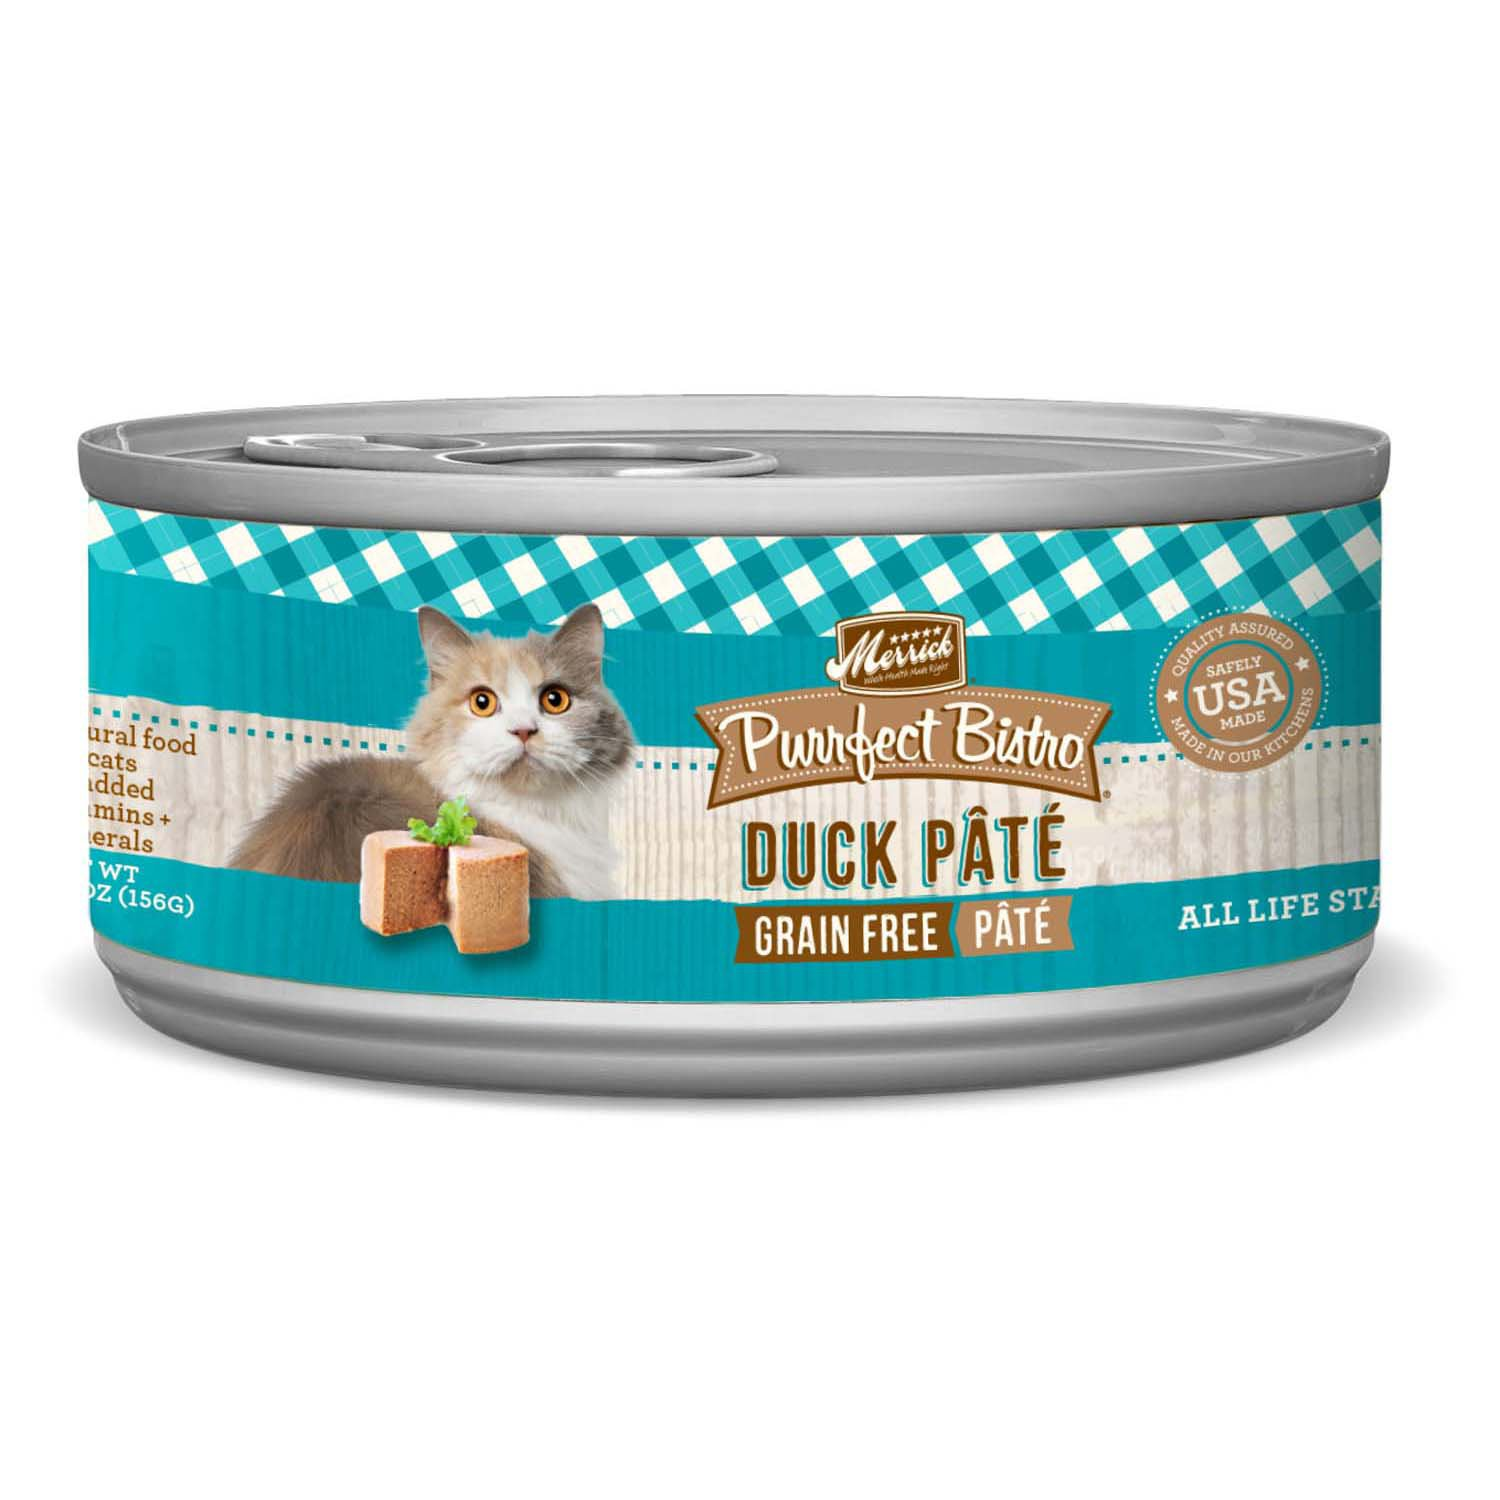 Merrick Purrfect Bistro Grain Free Duck Pate Canned Cat Food | Petco